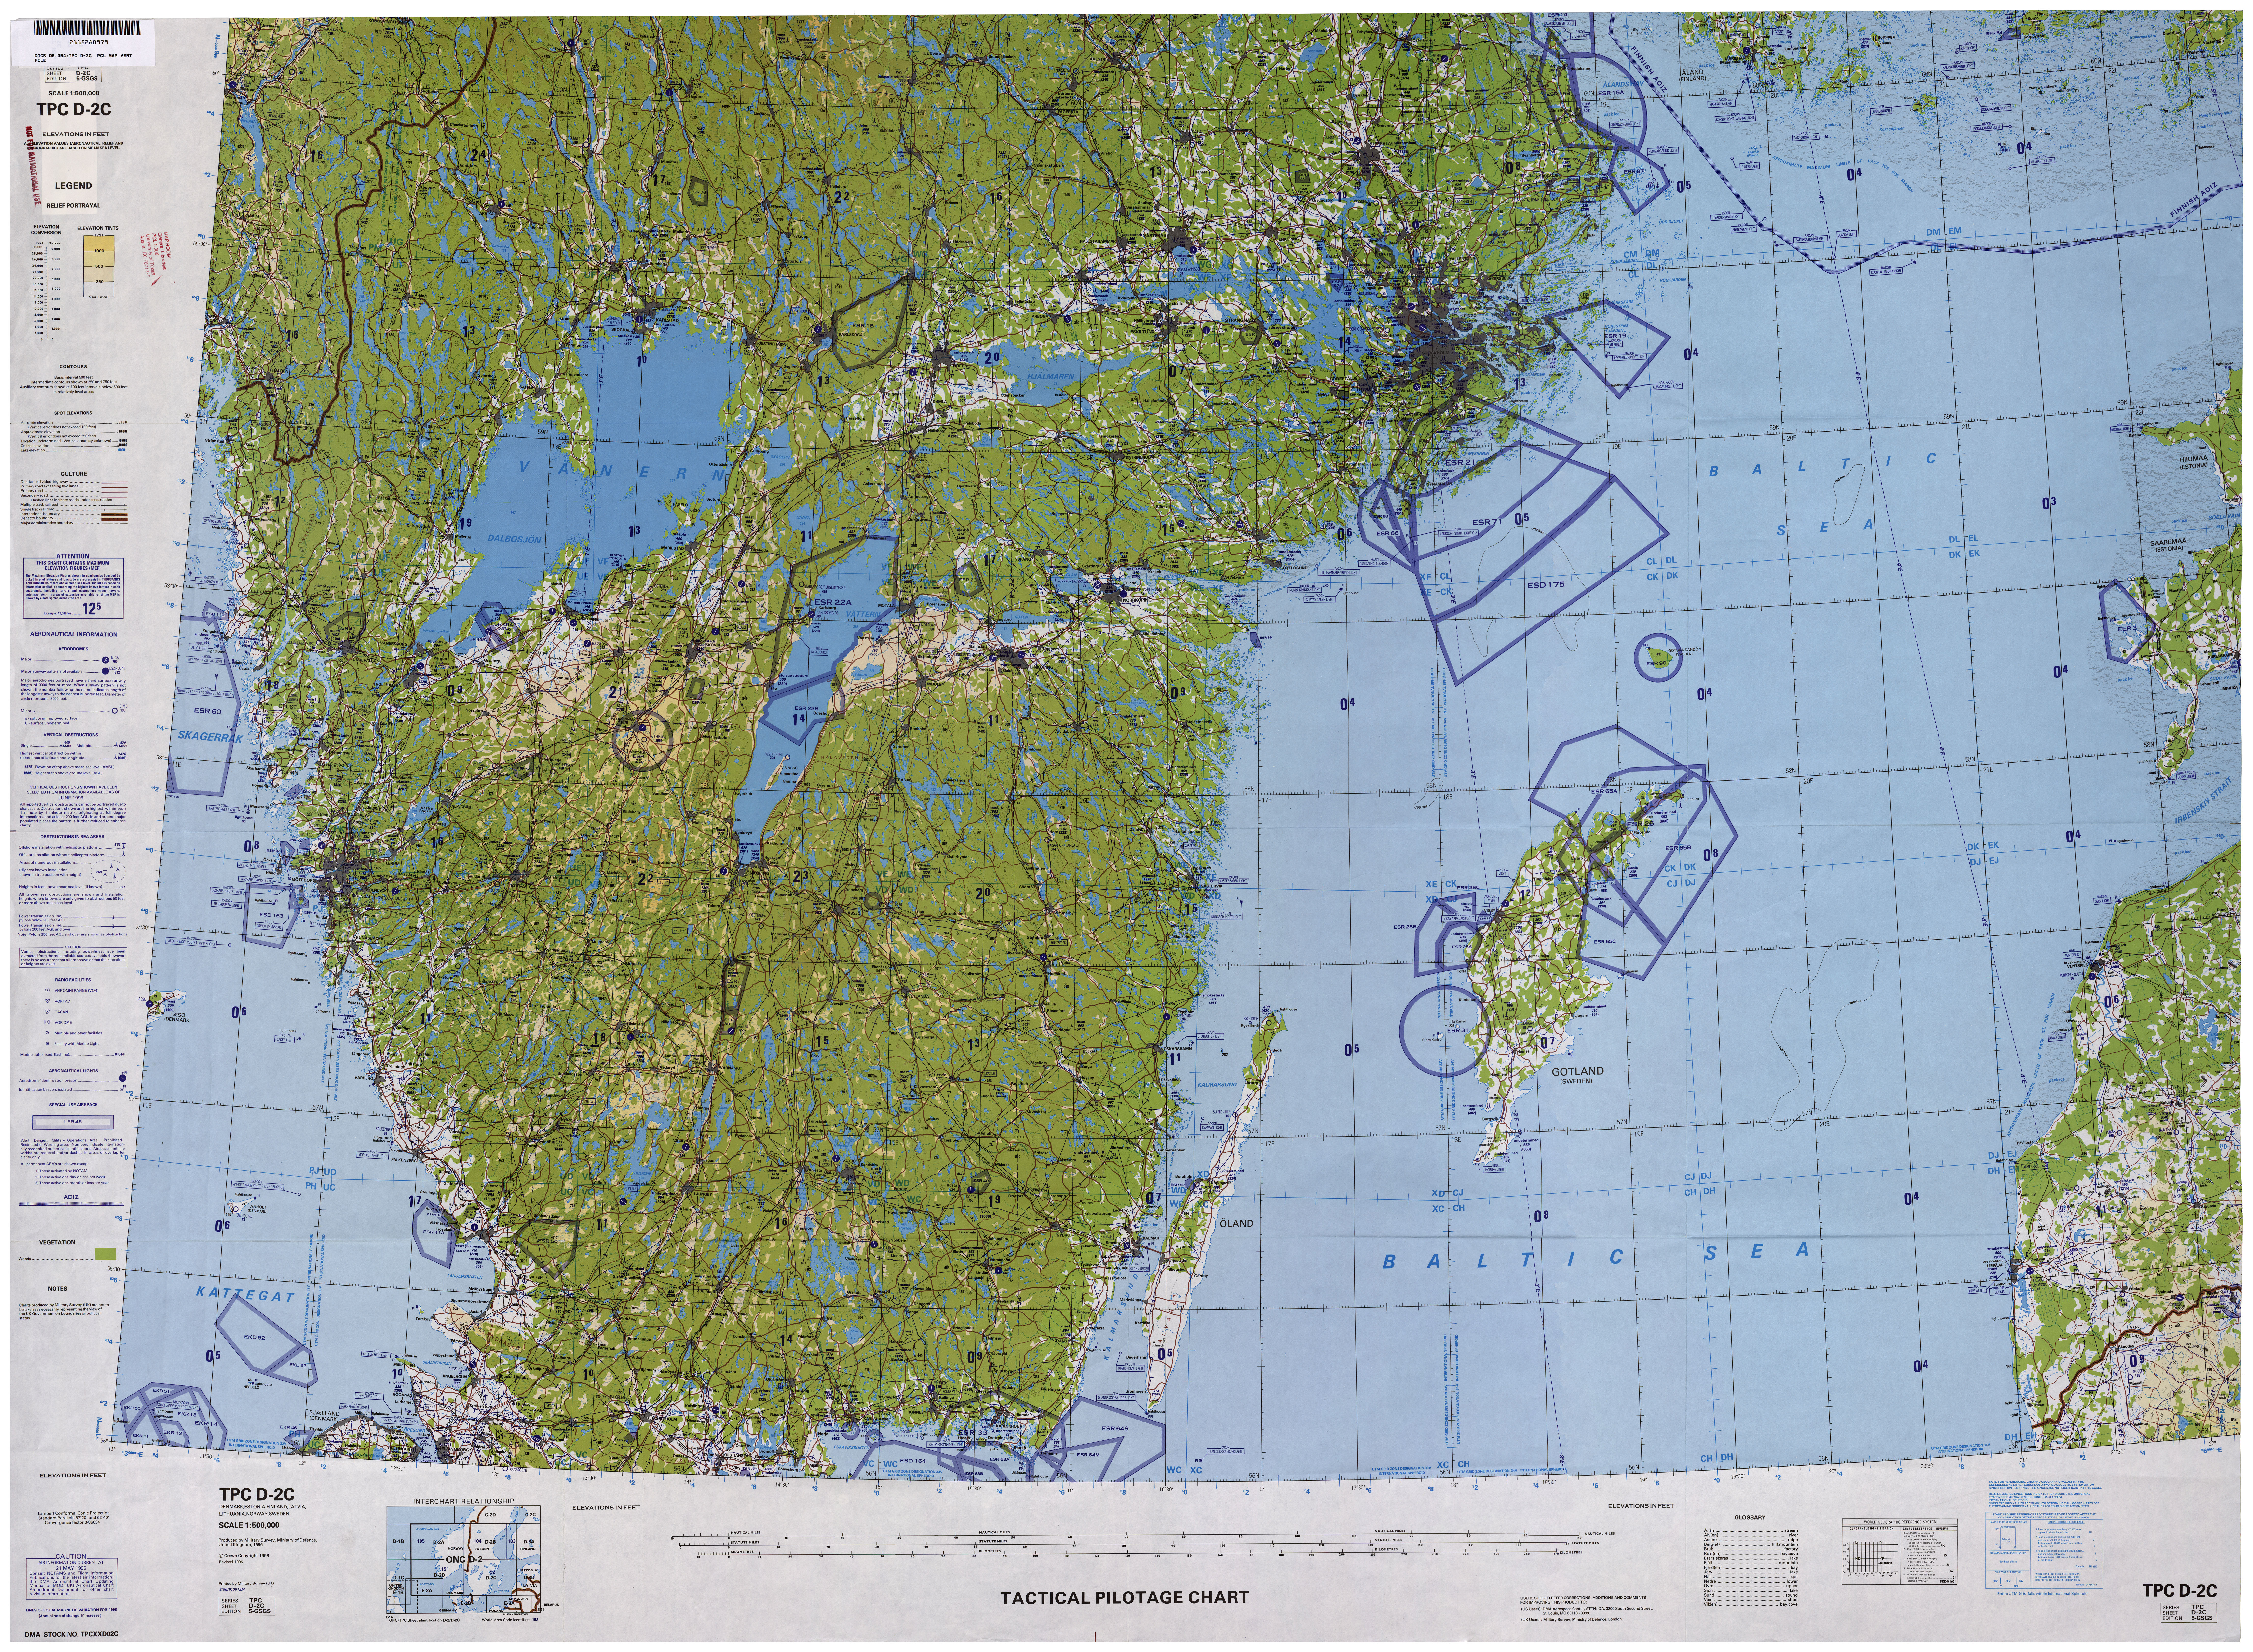 Tactical Pilotage Charts - Perry-Castañeda Map Collection - UT